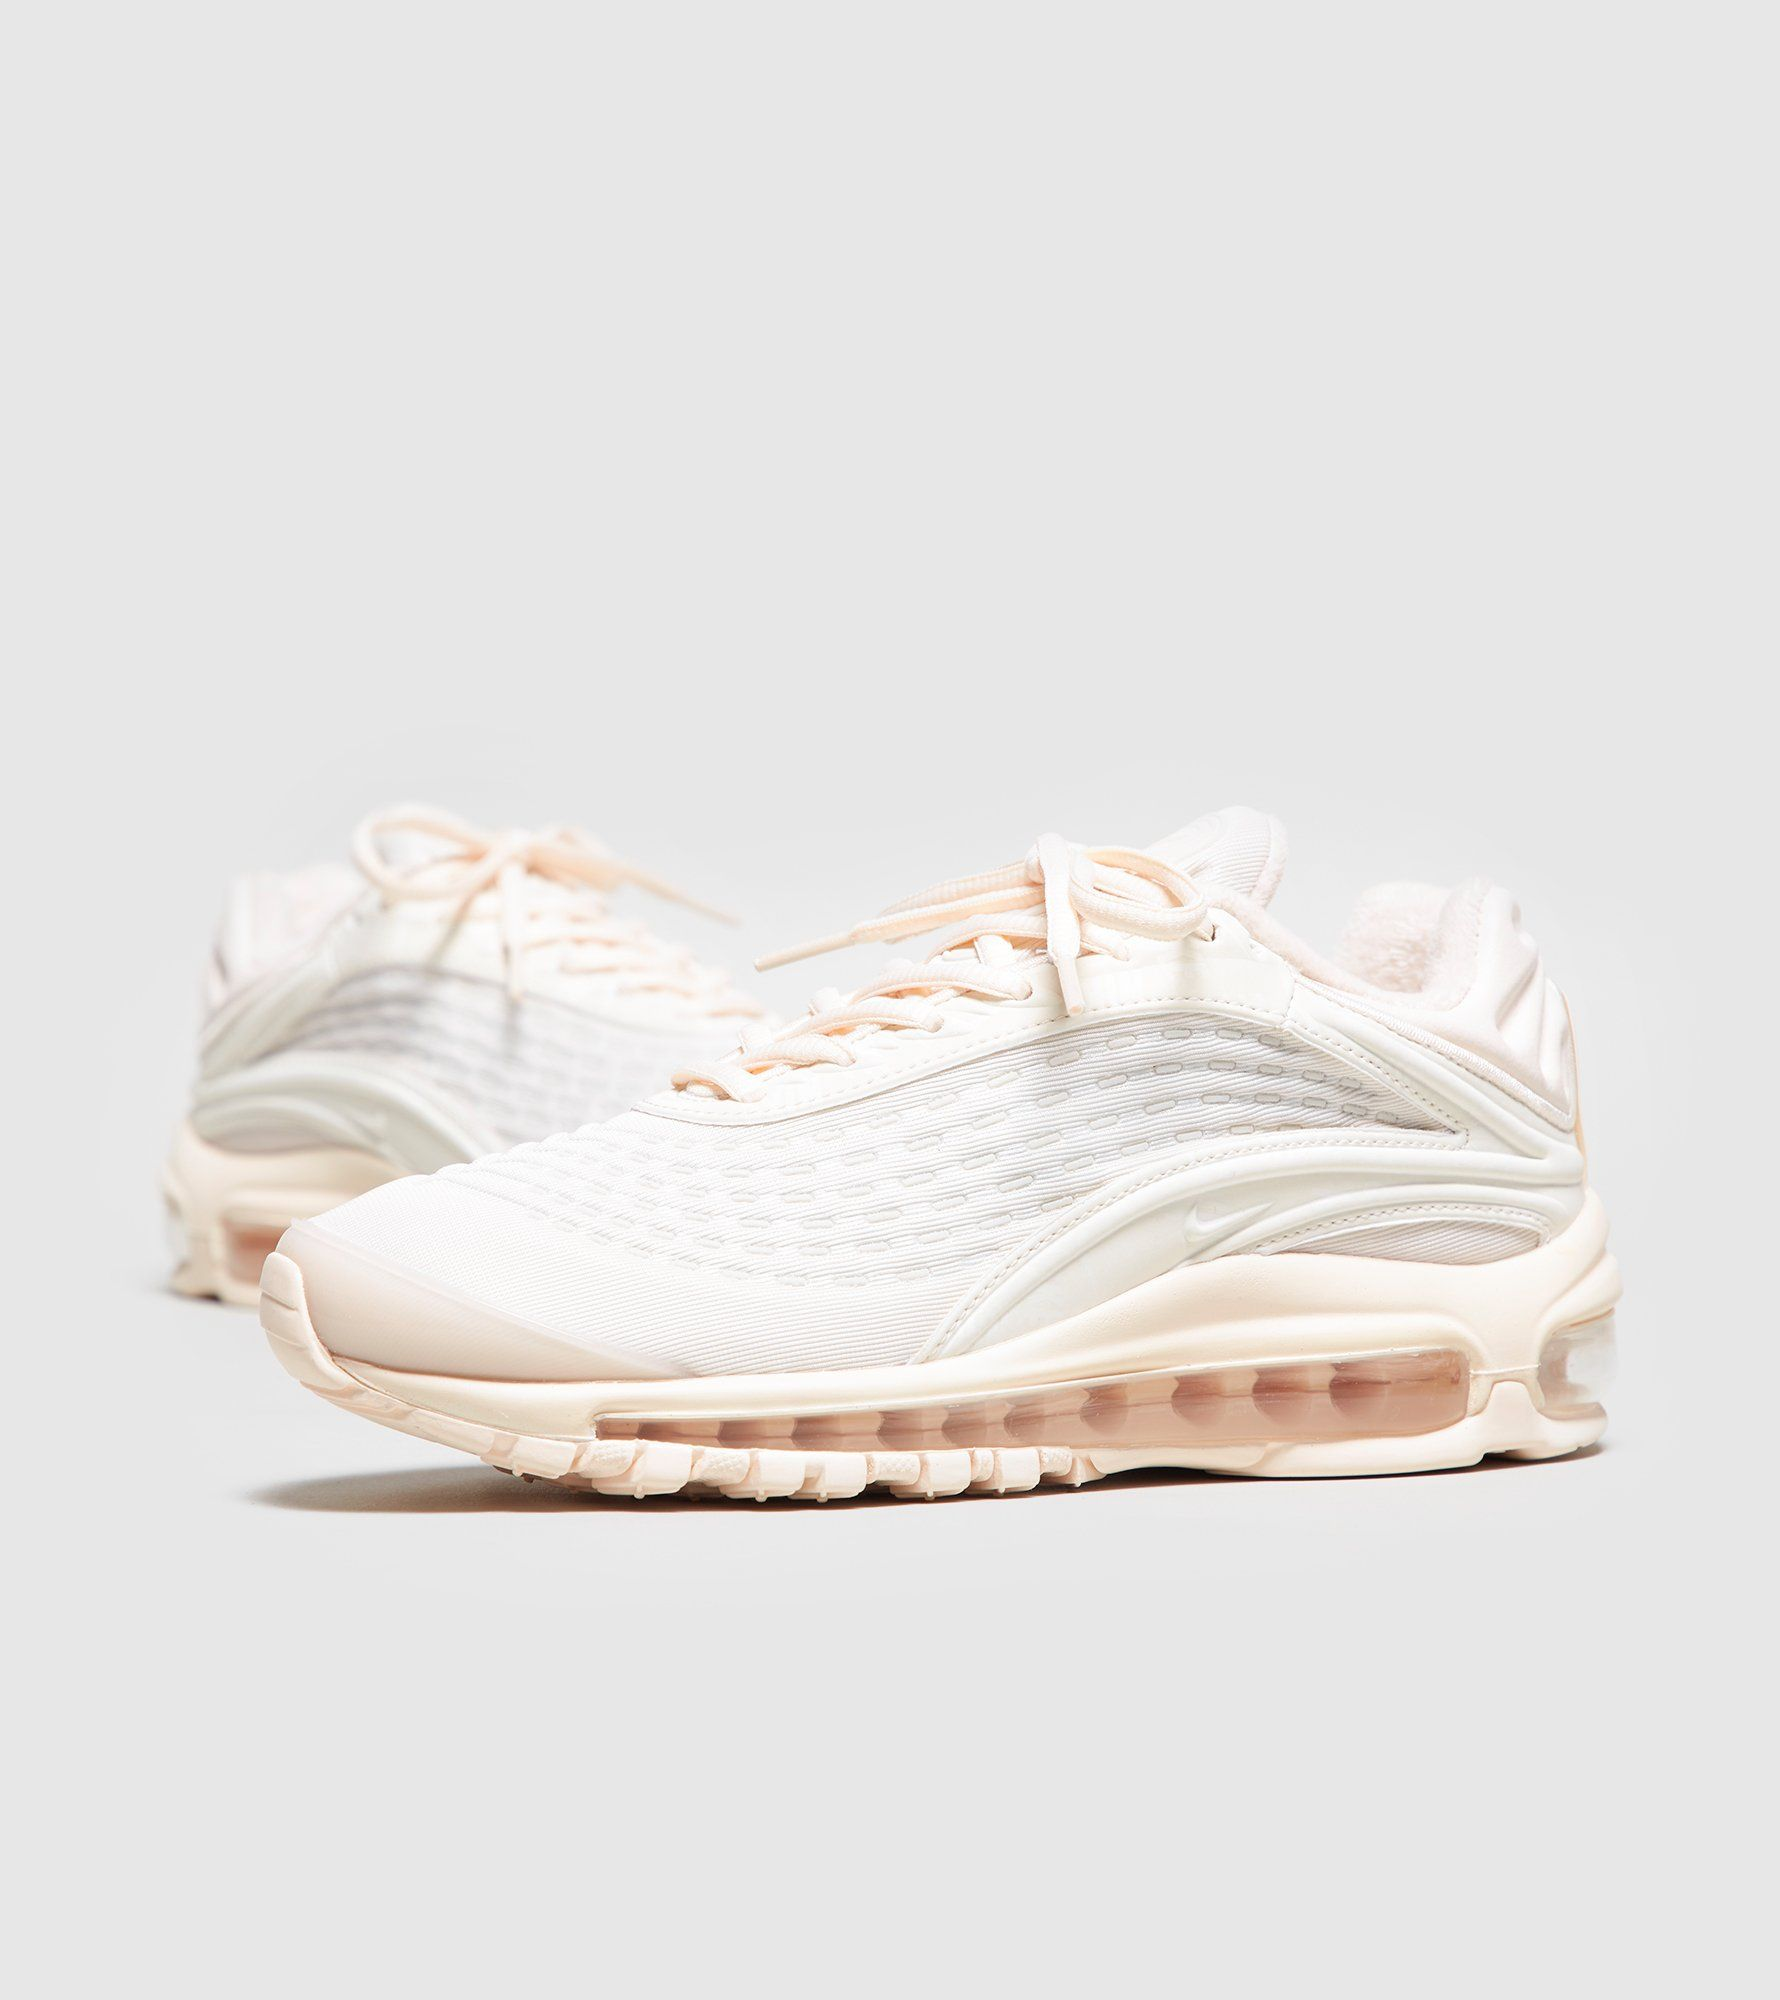 Nike Air Max Deluxe SE 'Stealth' Women's